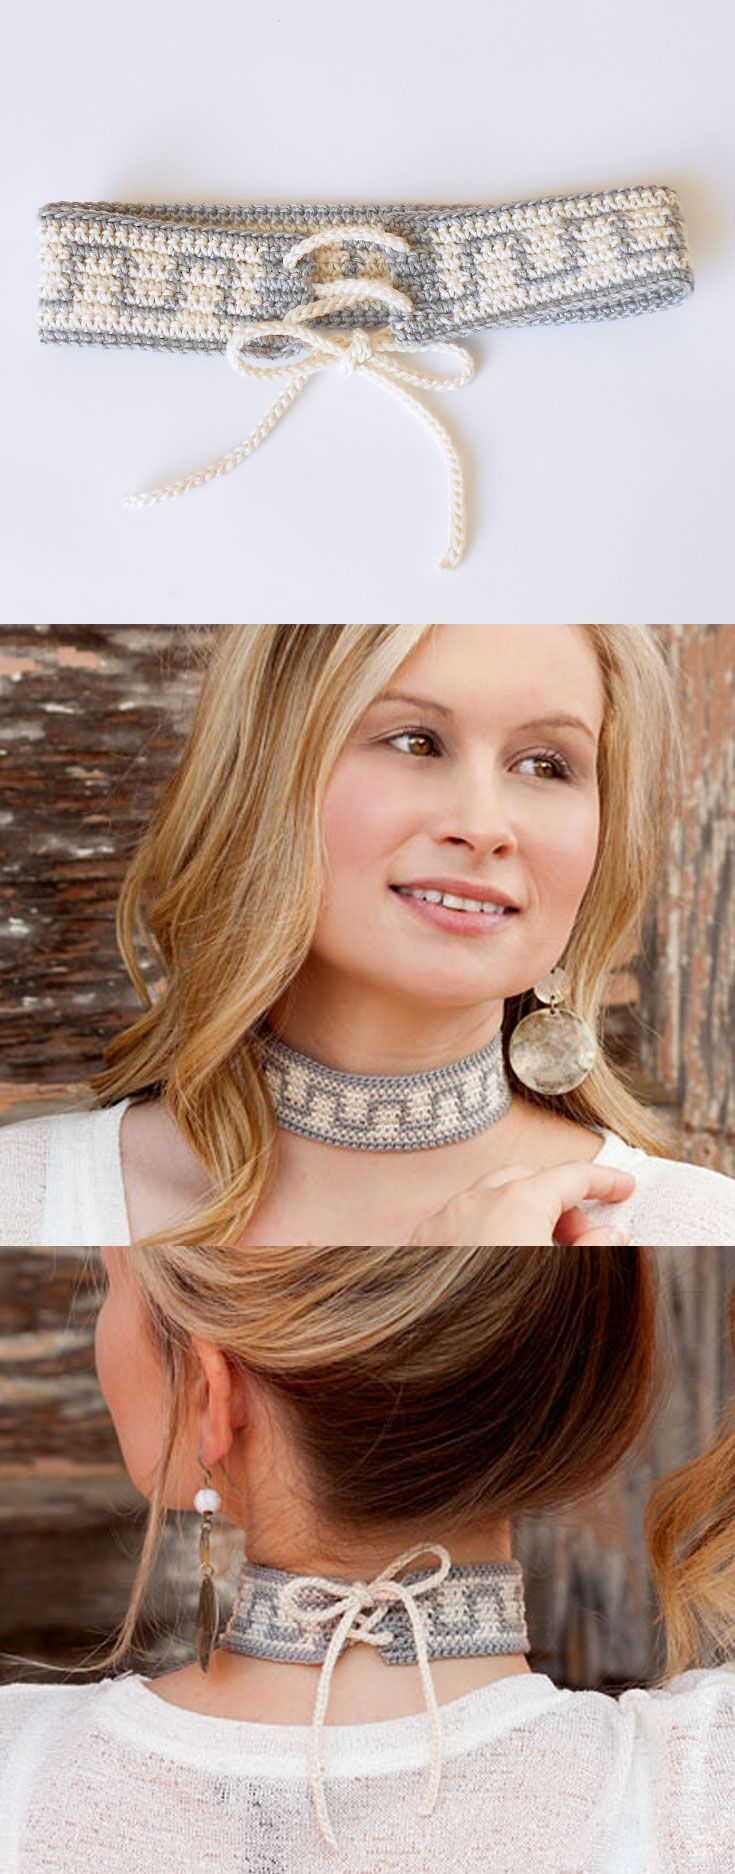 Tie Up Choker, in Learn to Tapestry Crochet book, that includes basic steps on how to carry and wrap yarn, change colors, step-by-step photos, written instructions and charts. A great learn-to book! Also included are 6 projects perfect for a beginner.